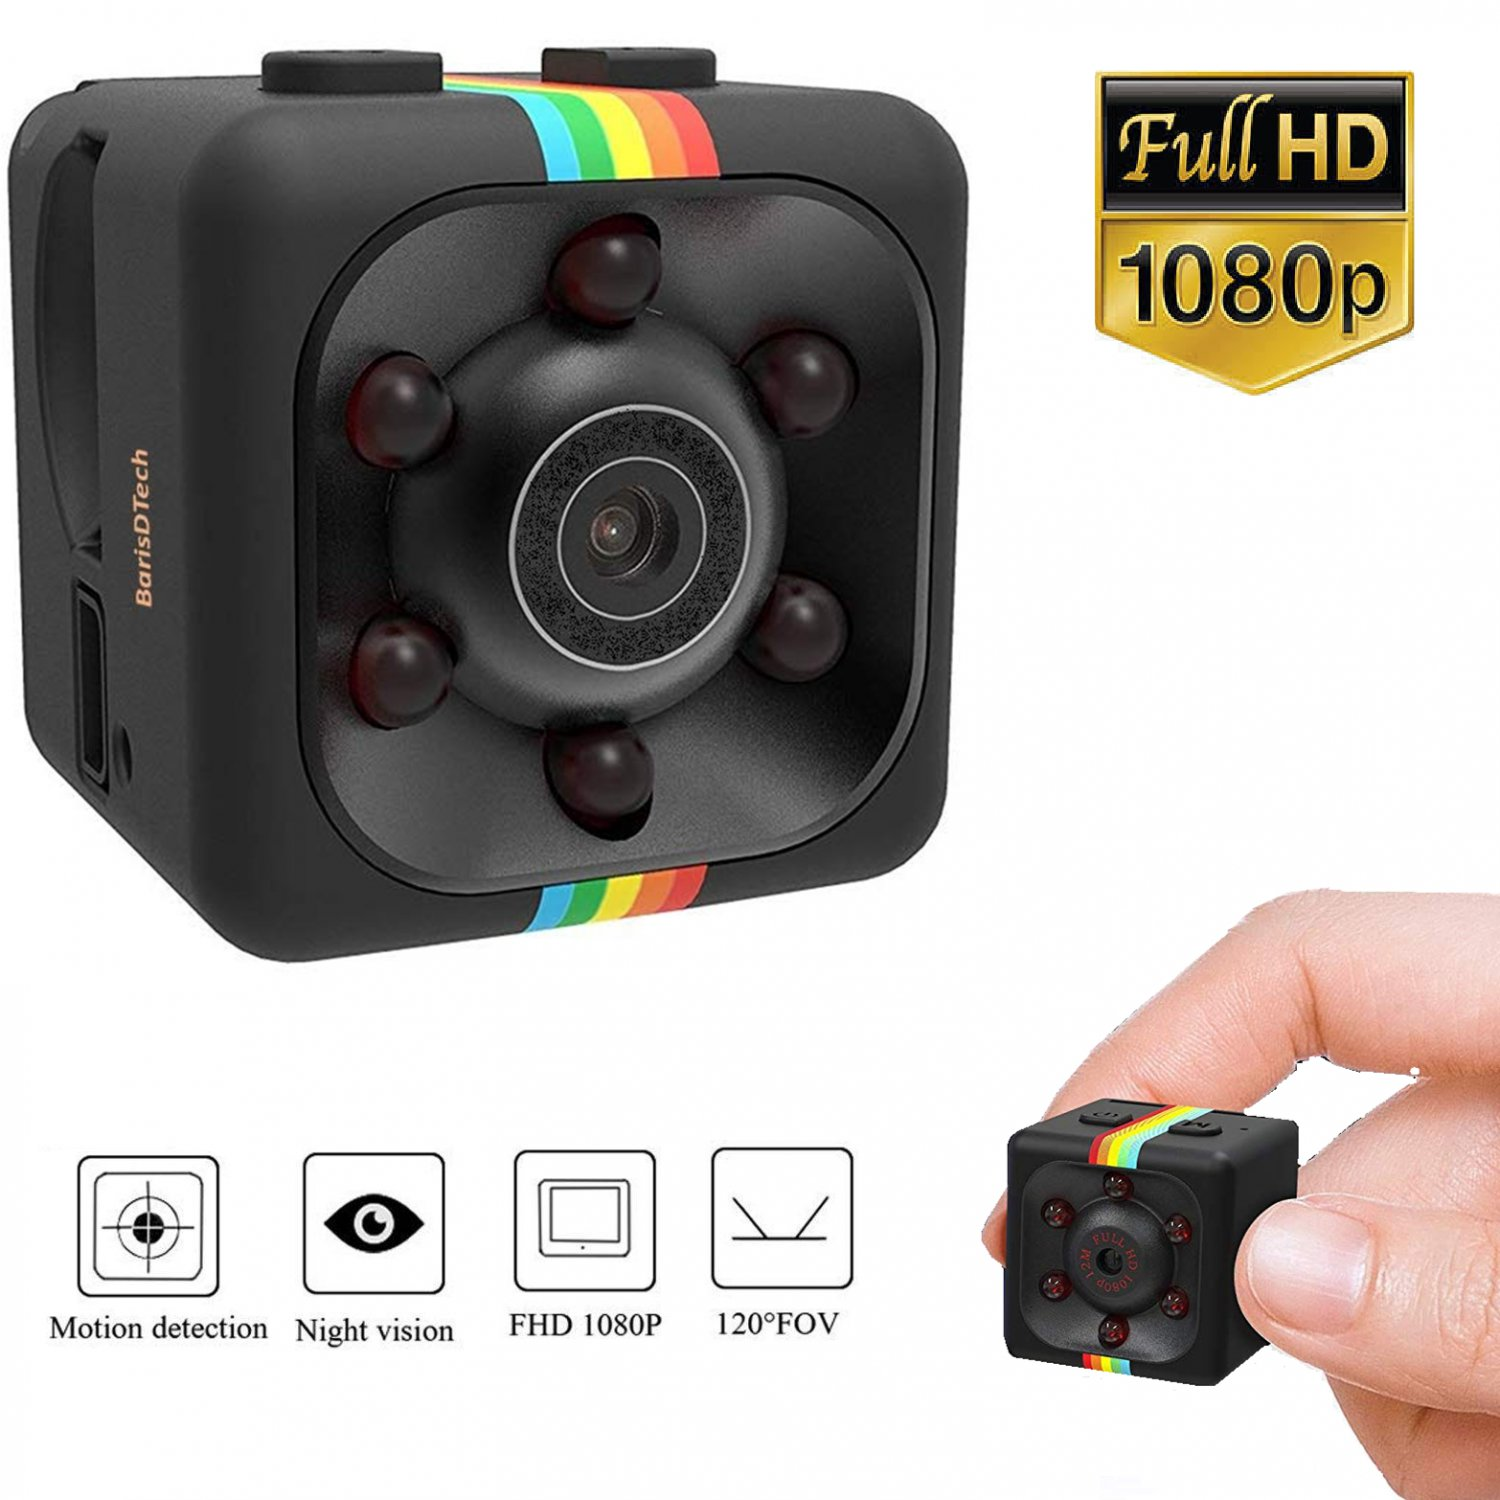 Mini Hidden Spy Camera Full HD 1080P Motion Detection Night Vision Dash Nanny Camera